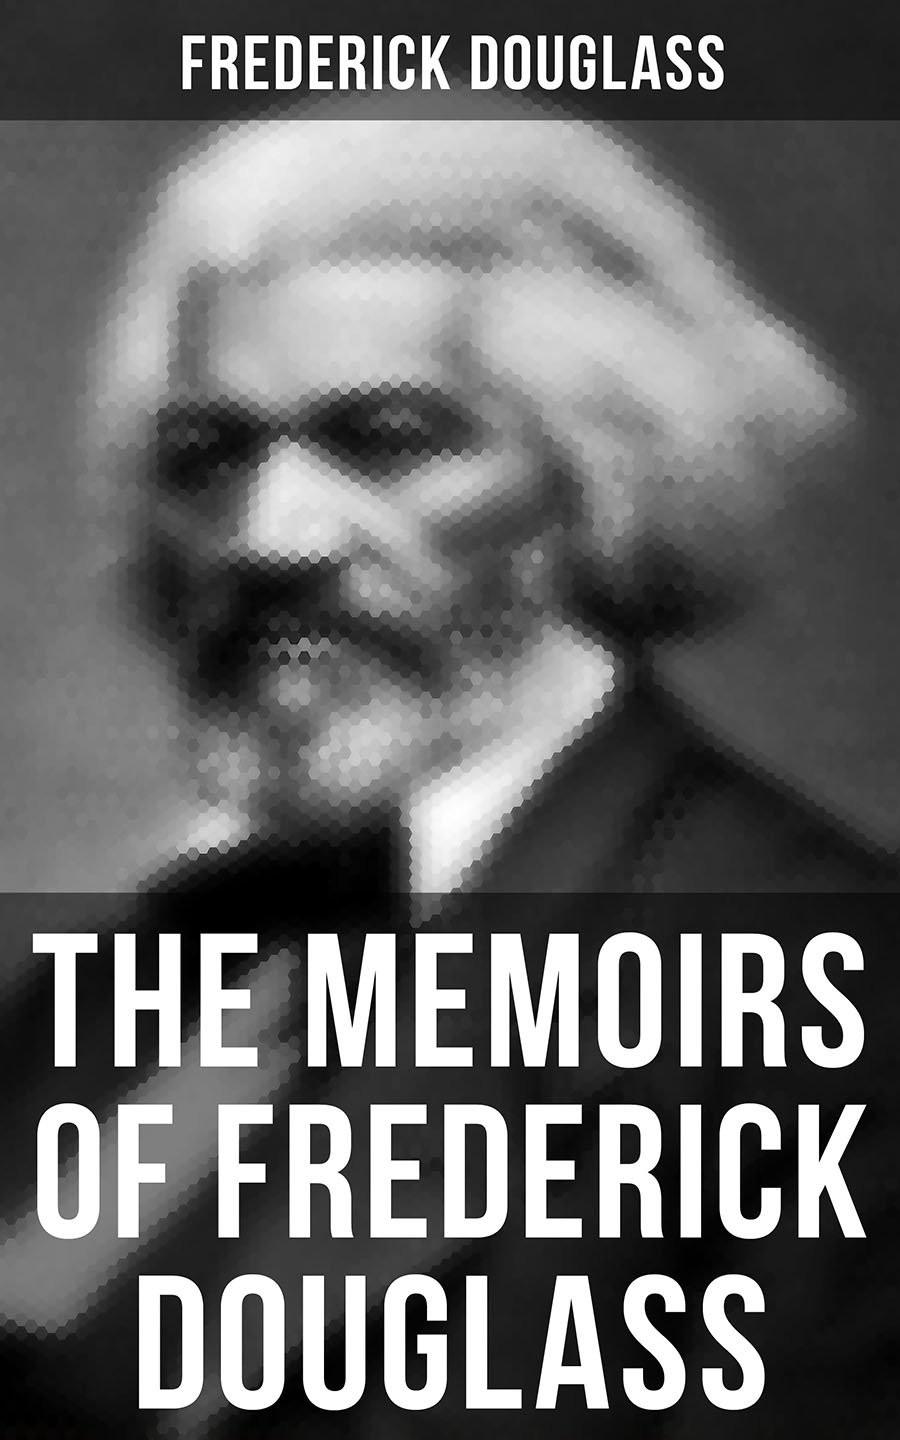 Frederick Douglass FREDERICK DOUGLASS: Narrative of the Life of Frederick Douglass, an American Slave & My Bondage and My Freedom (2 Memoirs in One Edition)